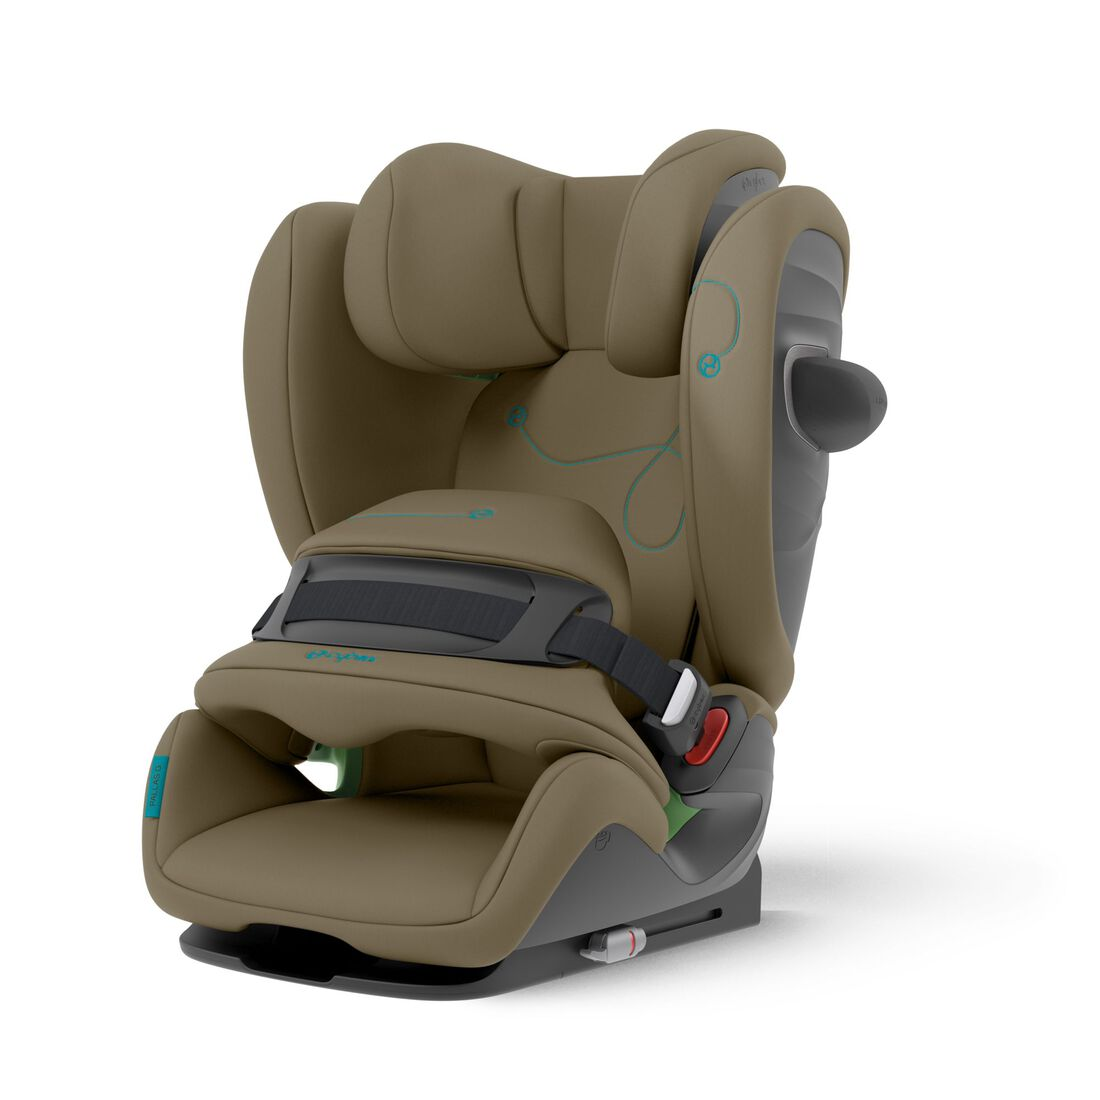 CYBEX Pallas G i-Size - Classic Beige in Classic Beige large image number 1